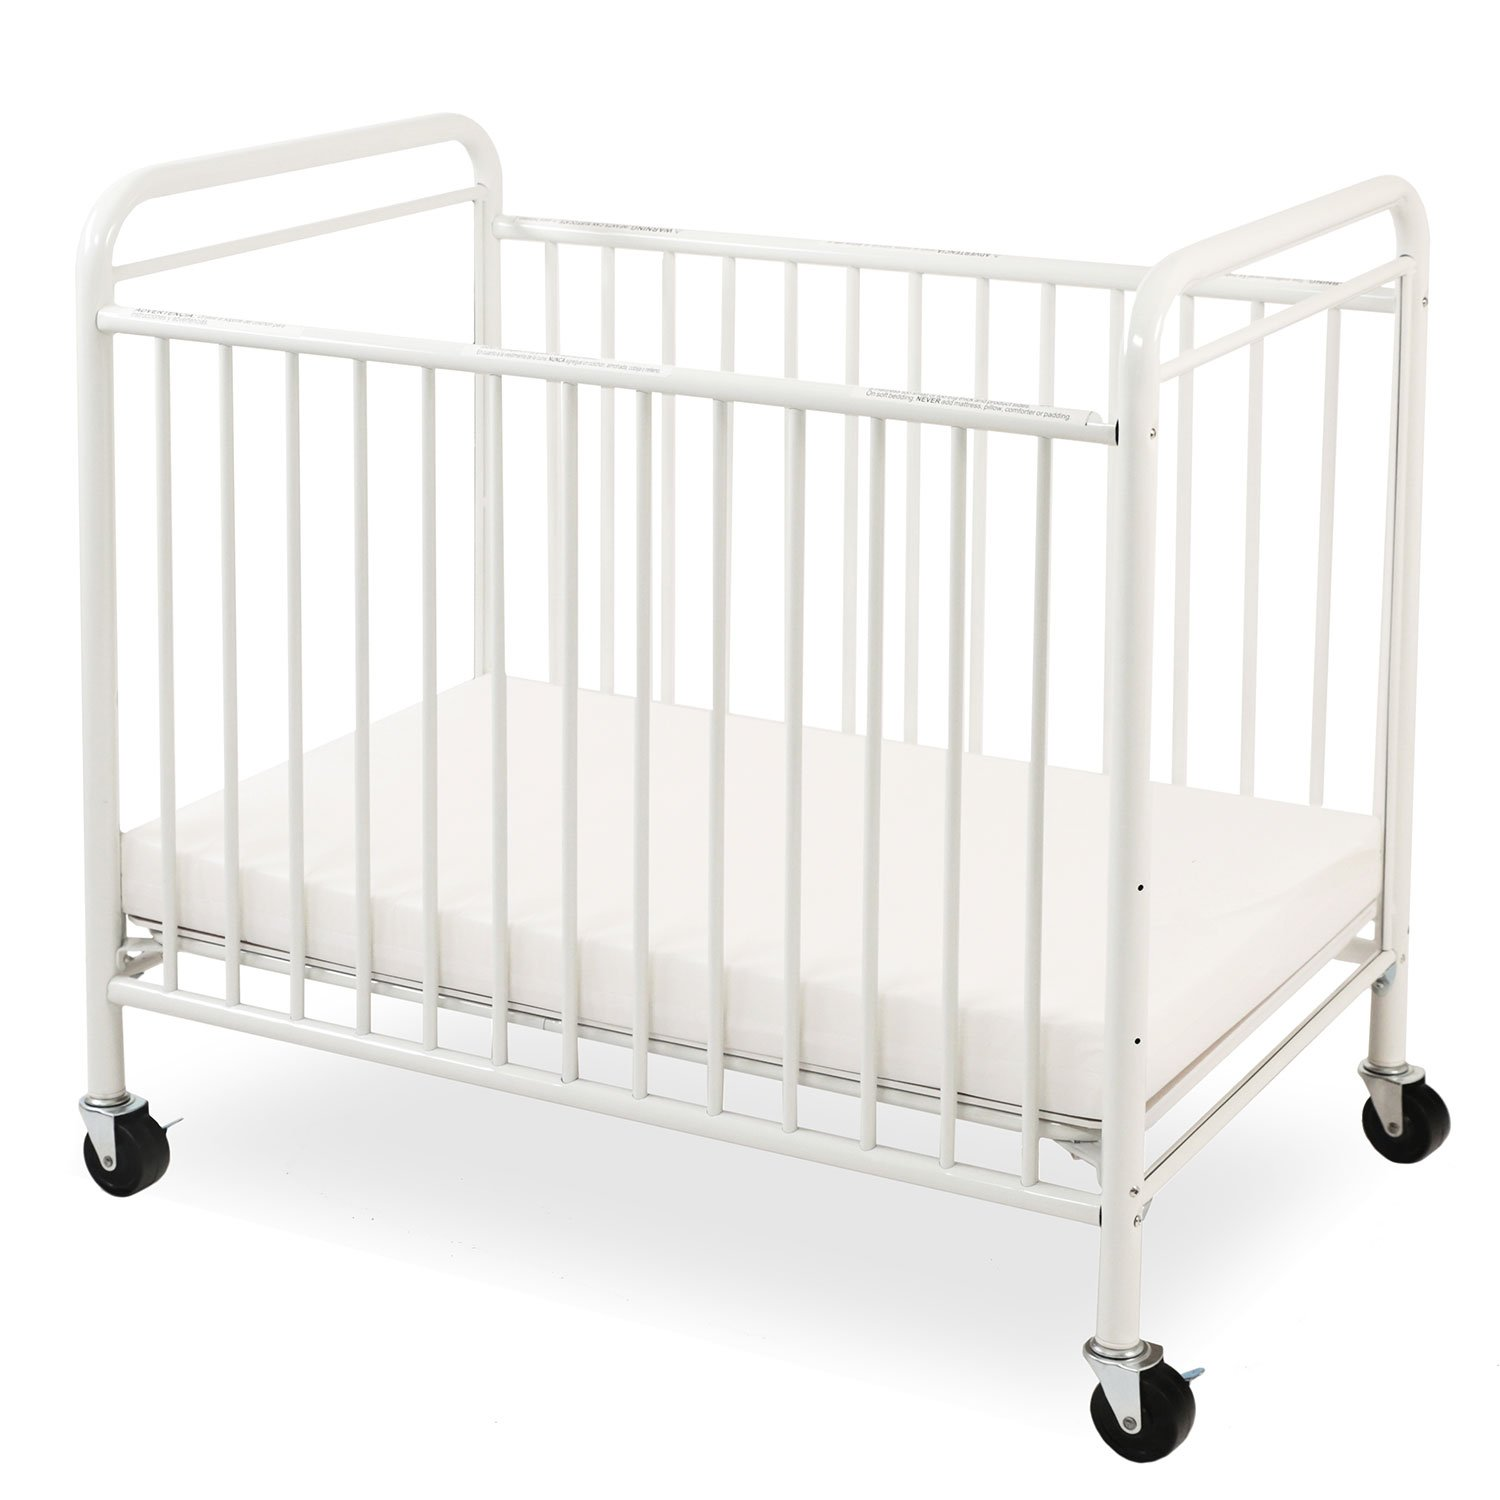 LA Baby The Condo Metal Evacuation Window Crib, White CS-8510-W